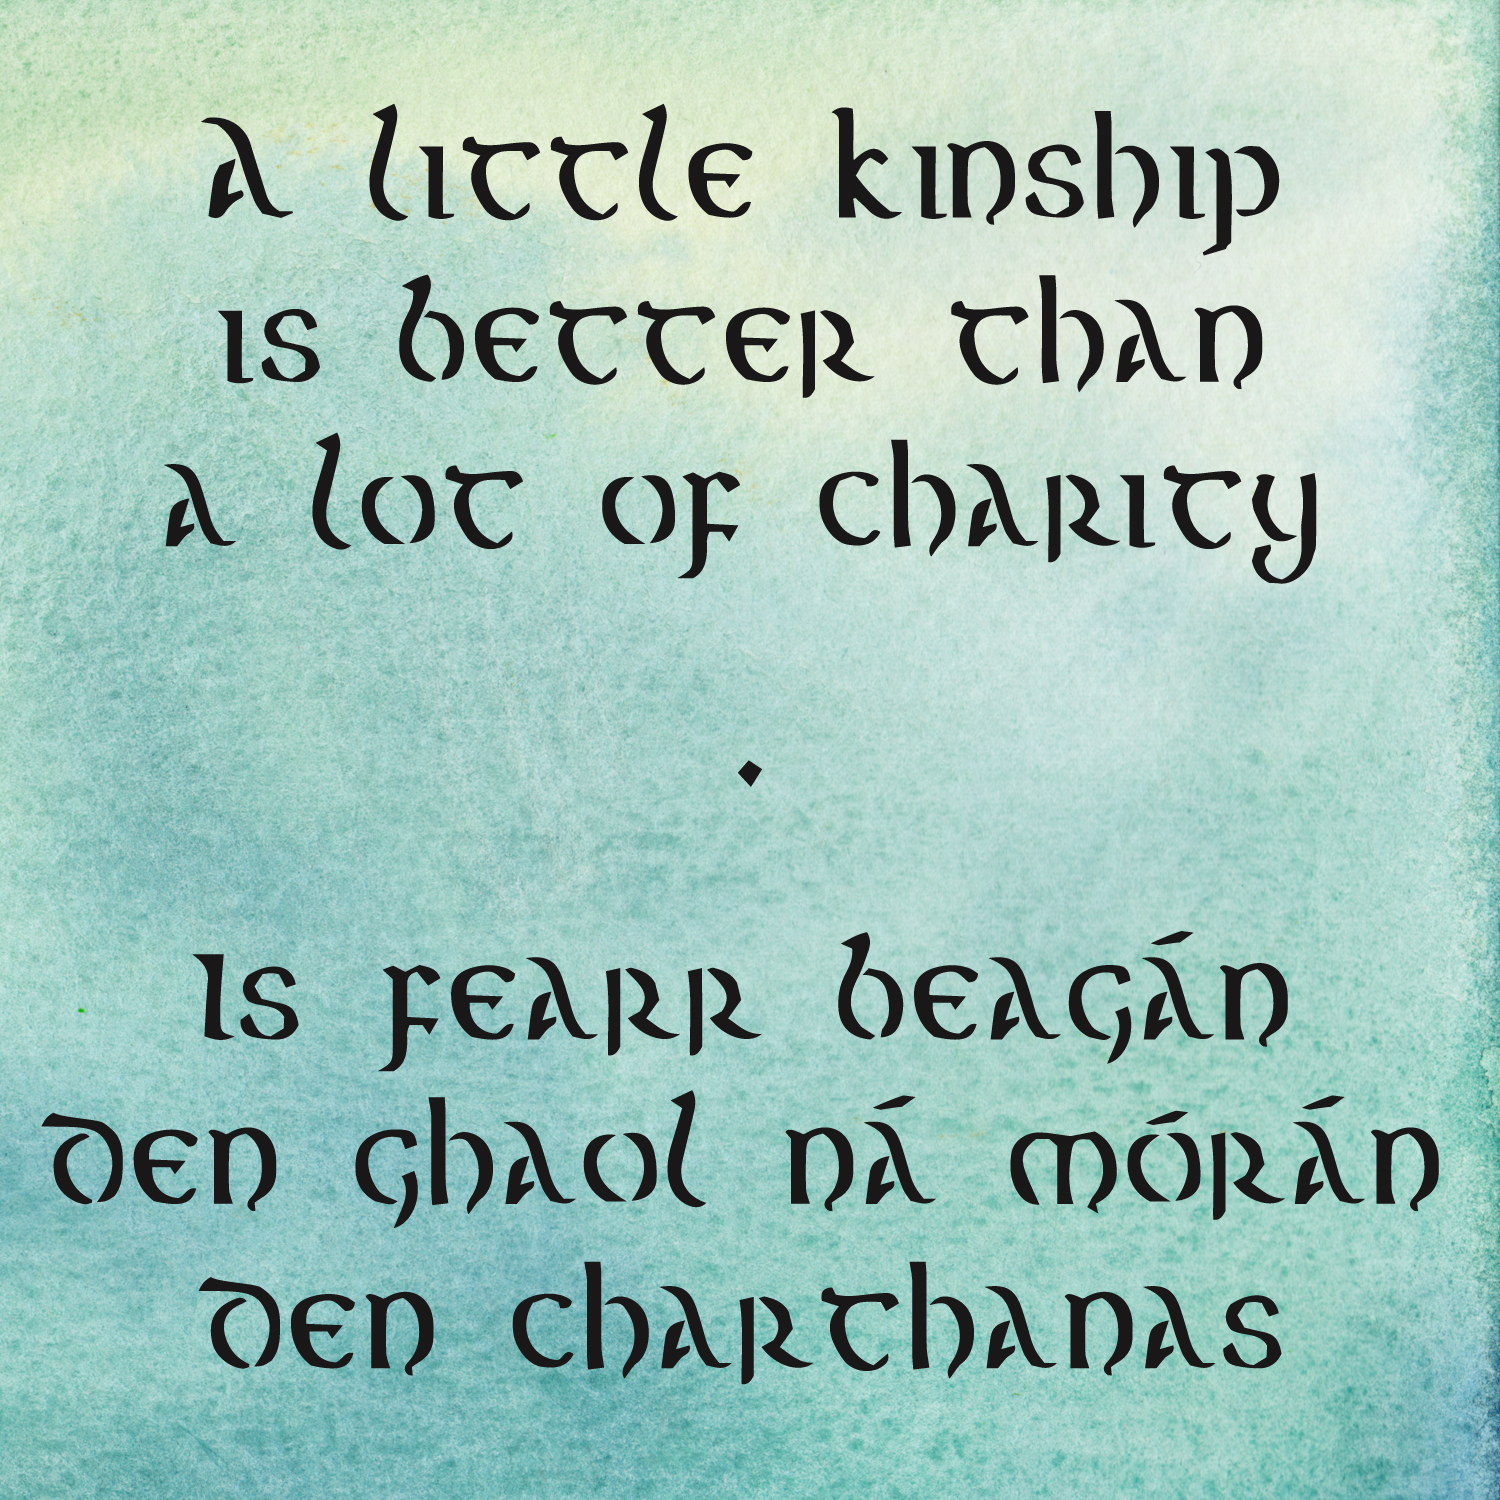 a little kinship is better than a lot of charity Irish quotes on kinship